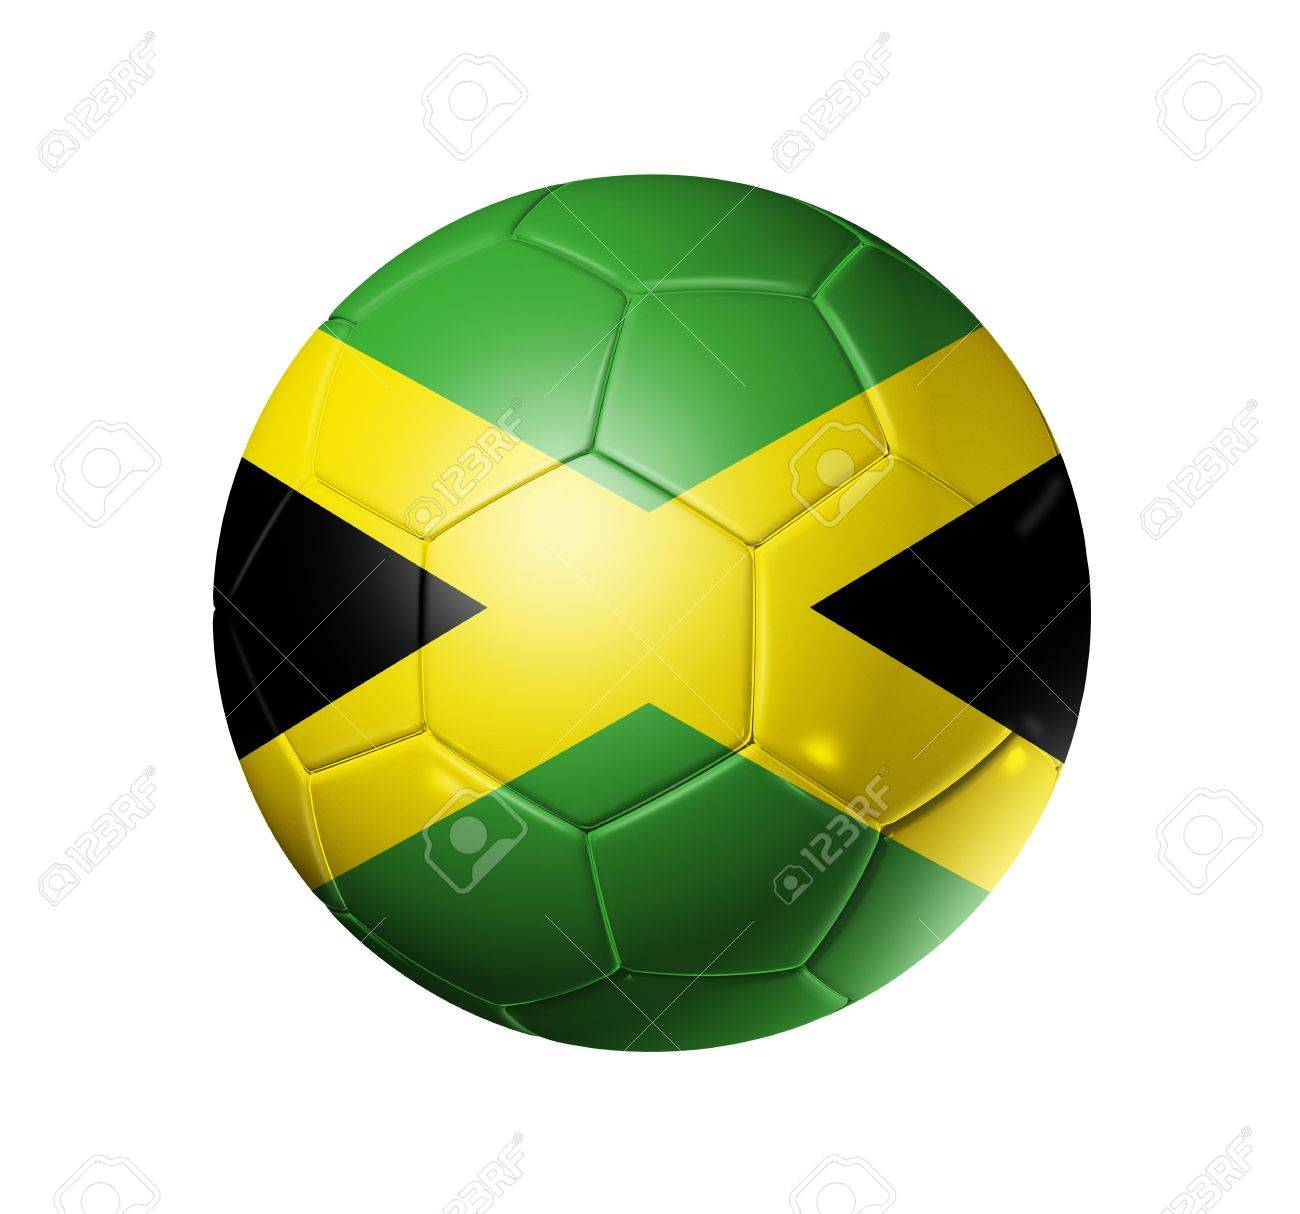 0921bc3bb2e 3D soccer ball with Jamaica team flag. isolated on white with clipping path  Stock Photo